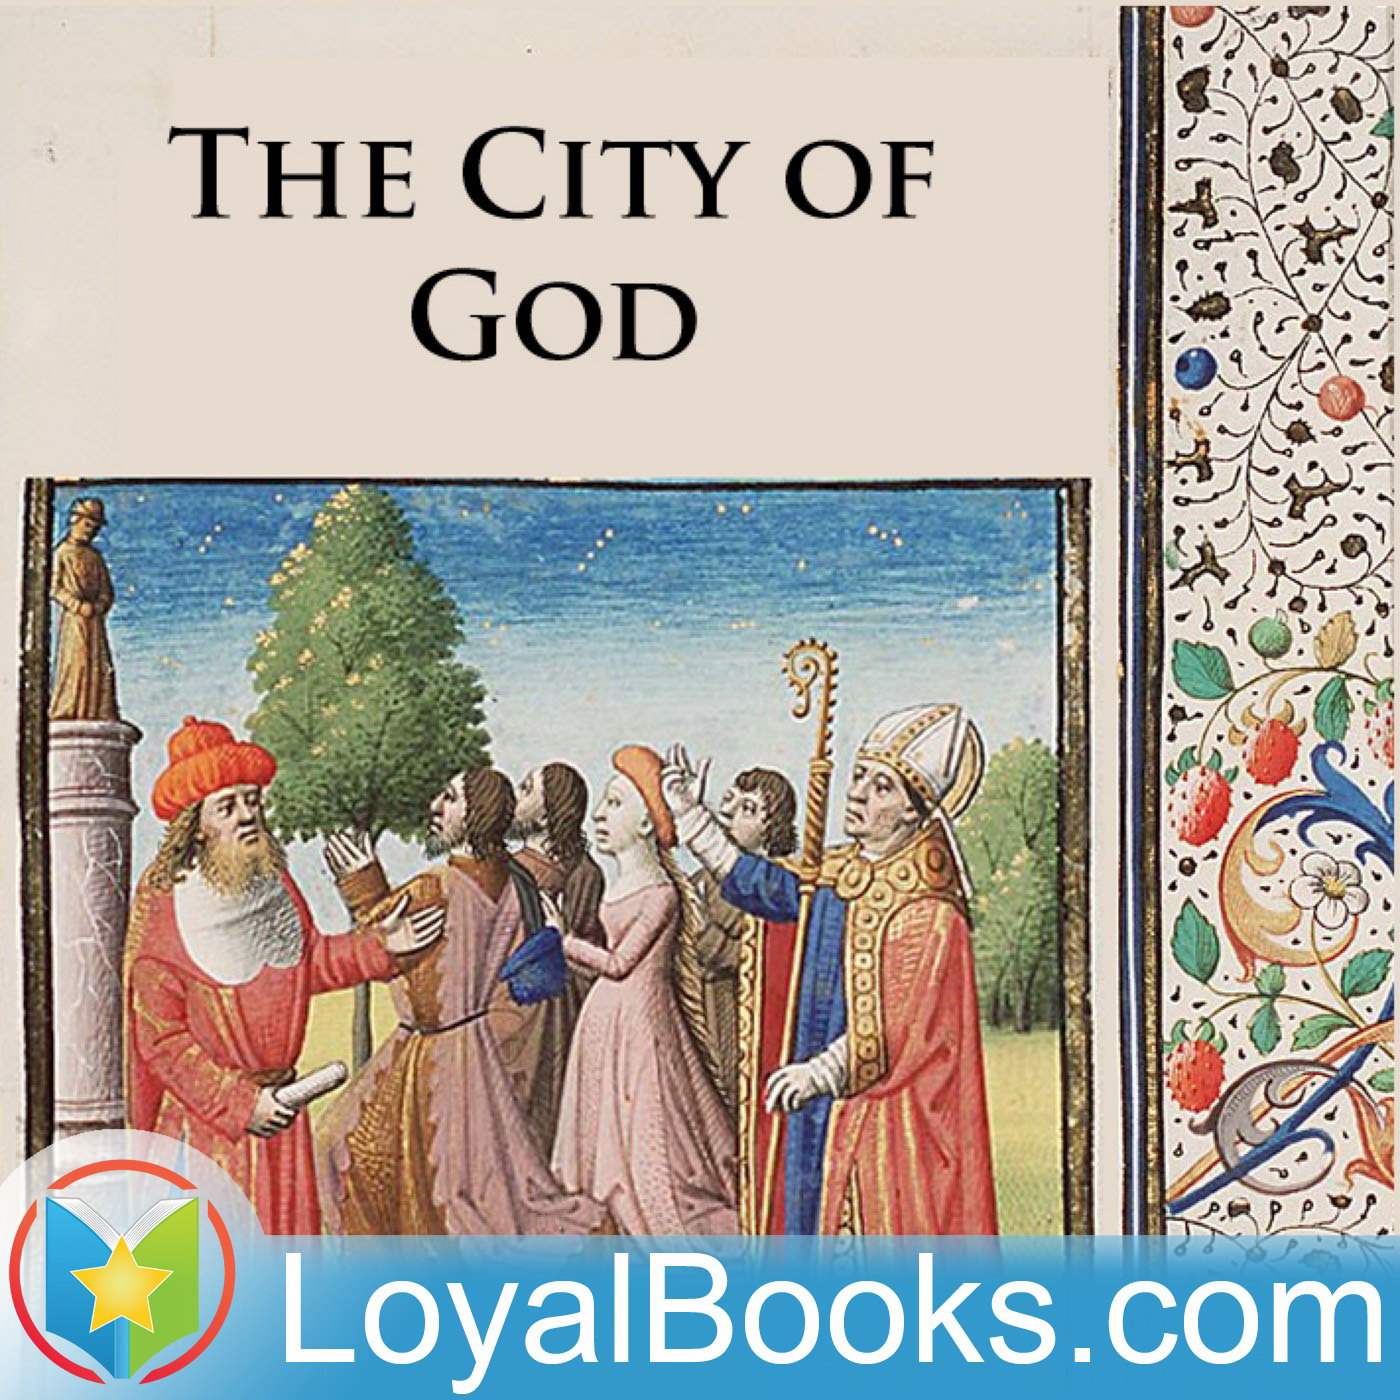 <![CDATA[The City of God by Saint Augustine of Hippo]]>